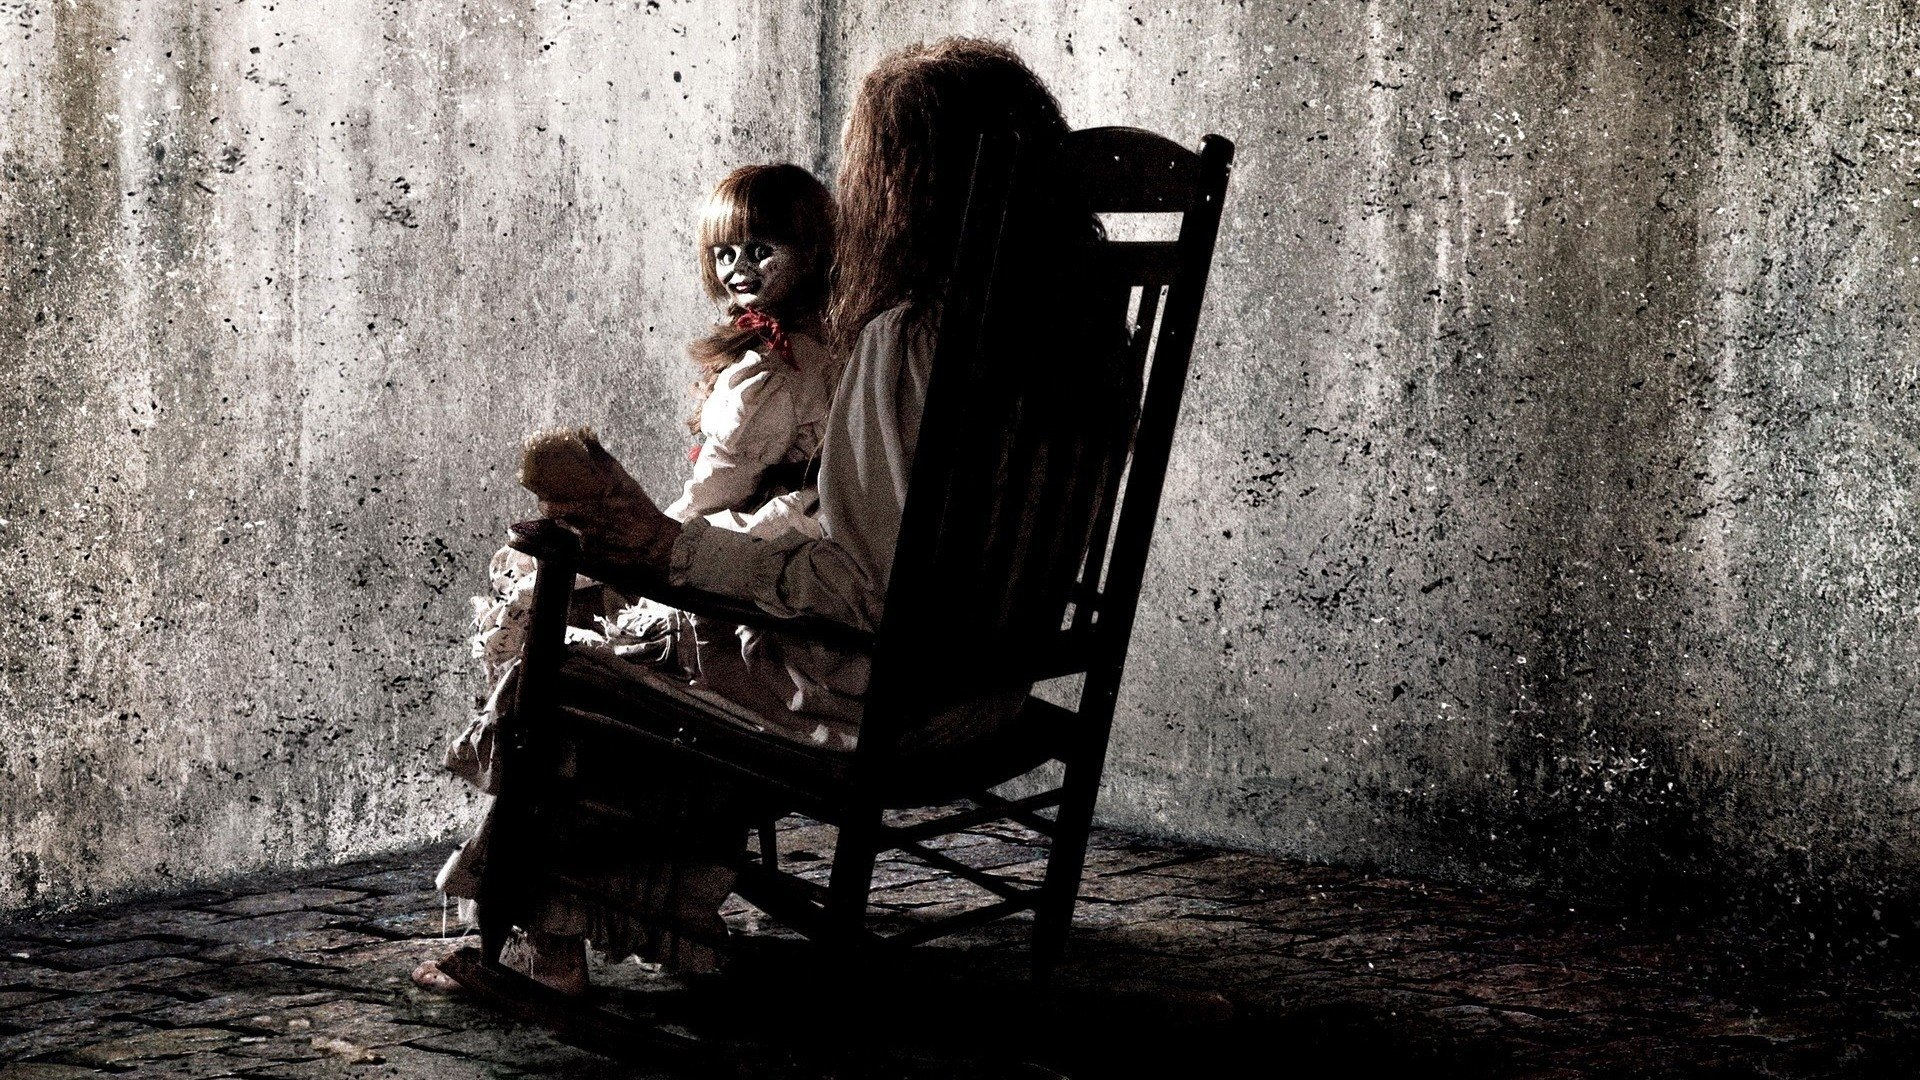 annabelle 3 full movie in english free download